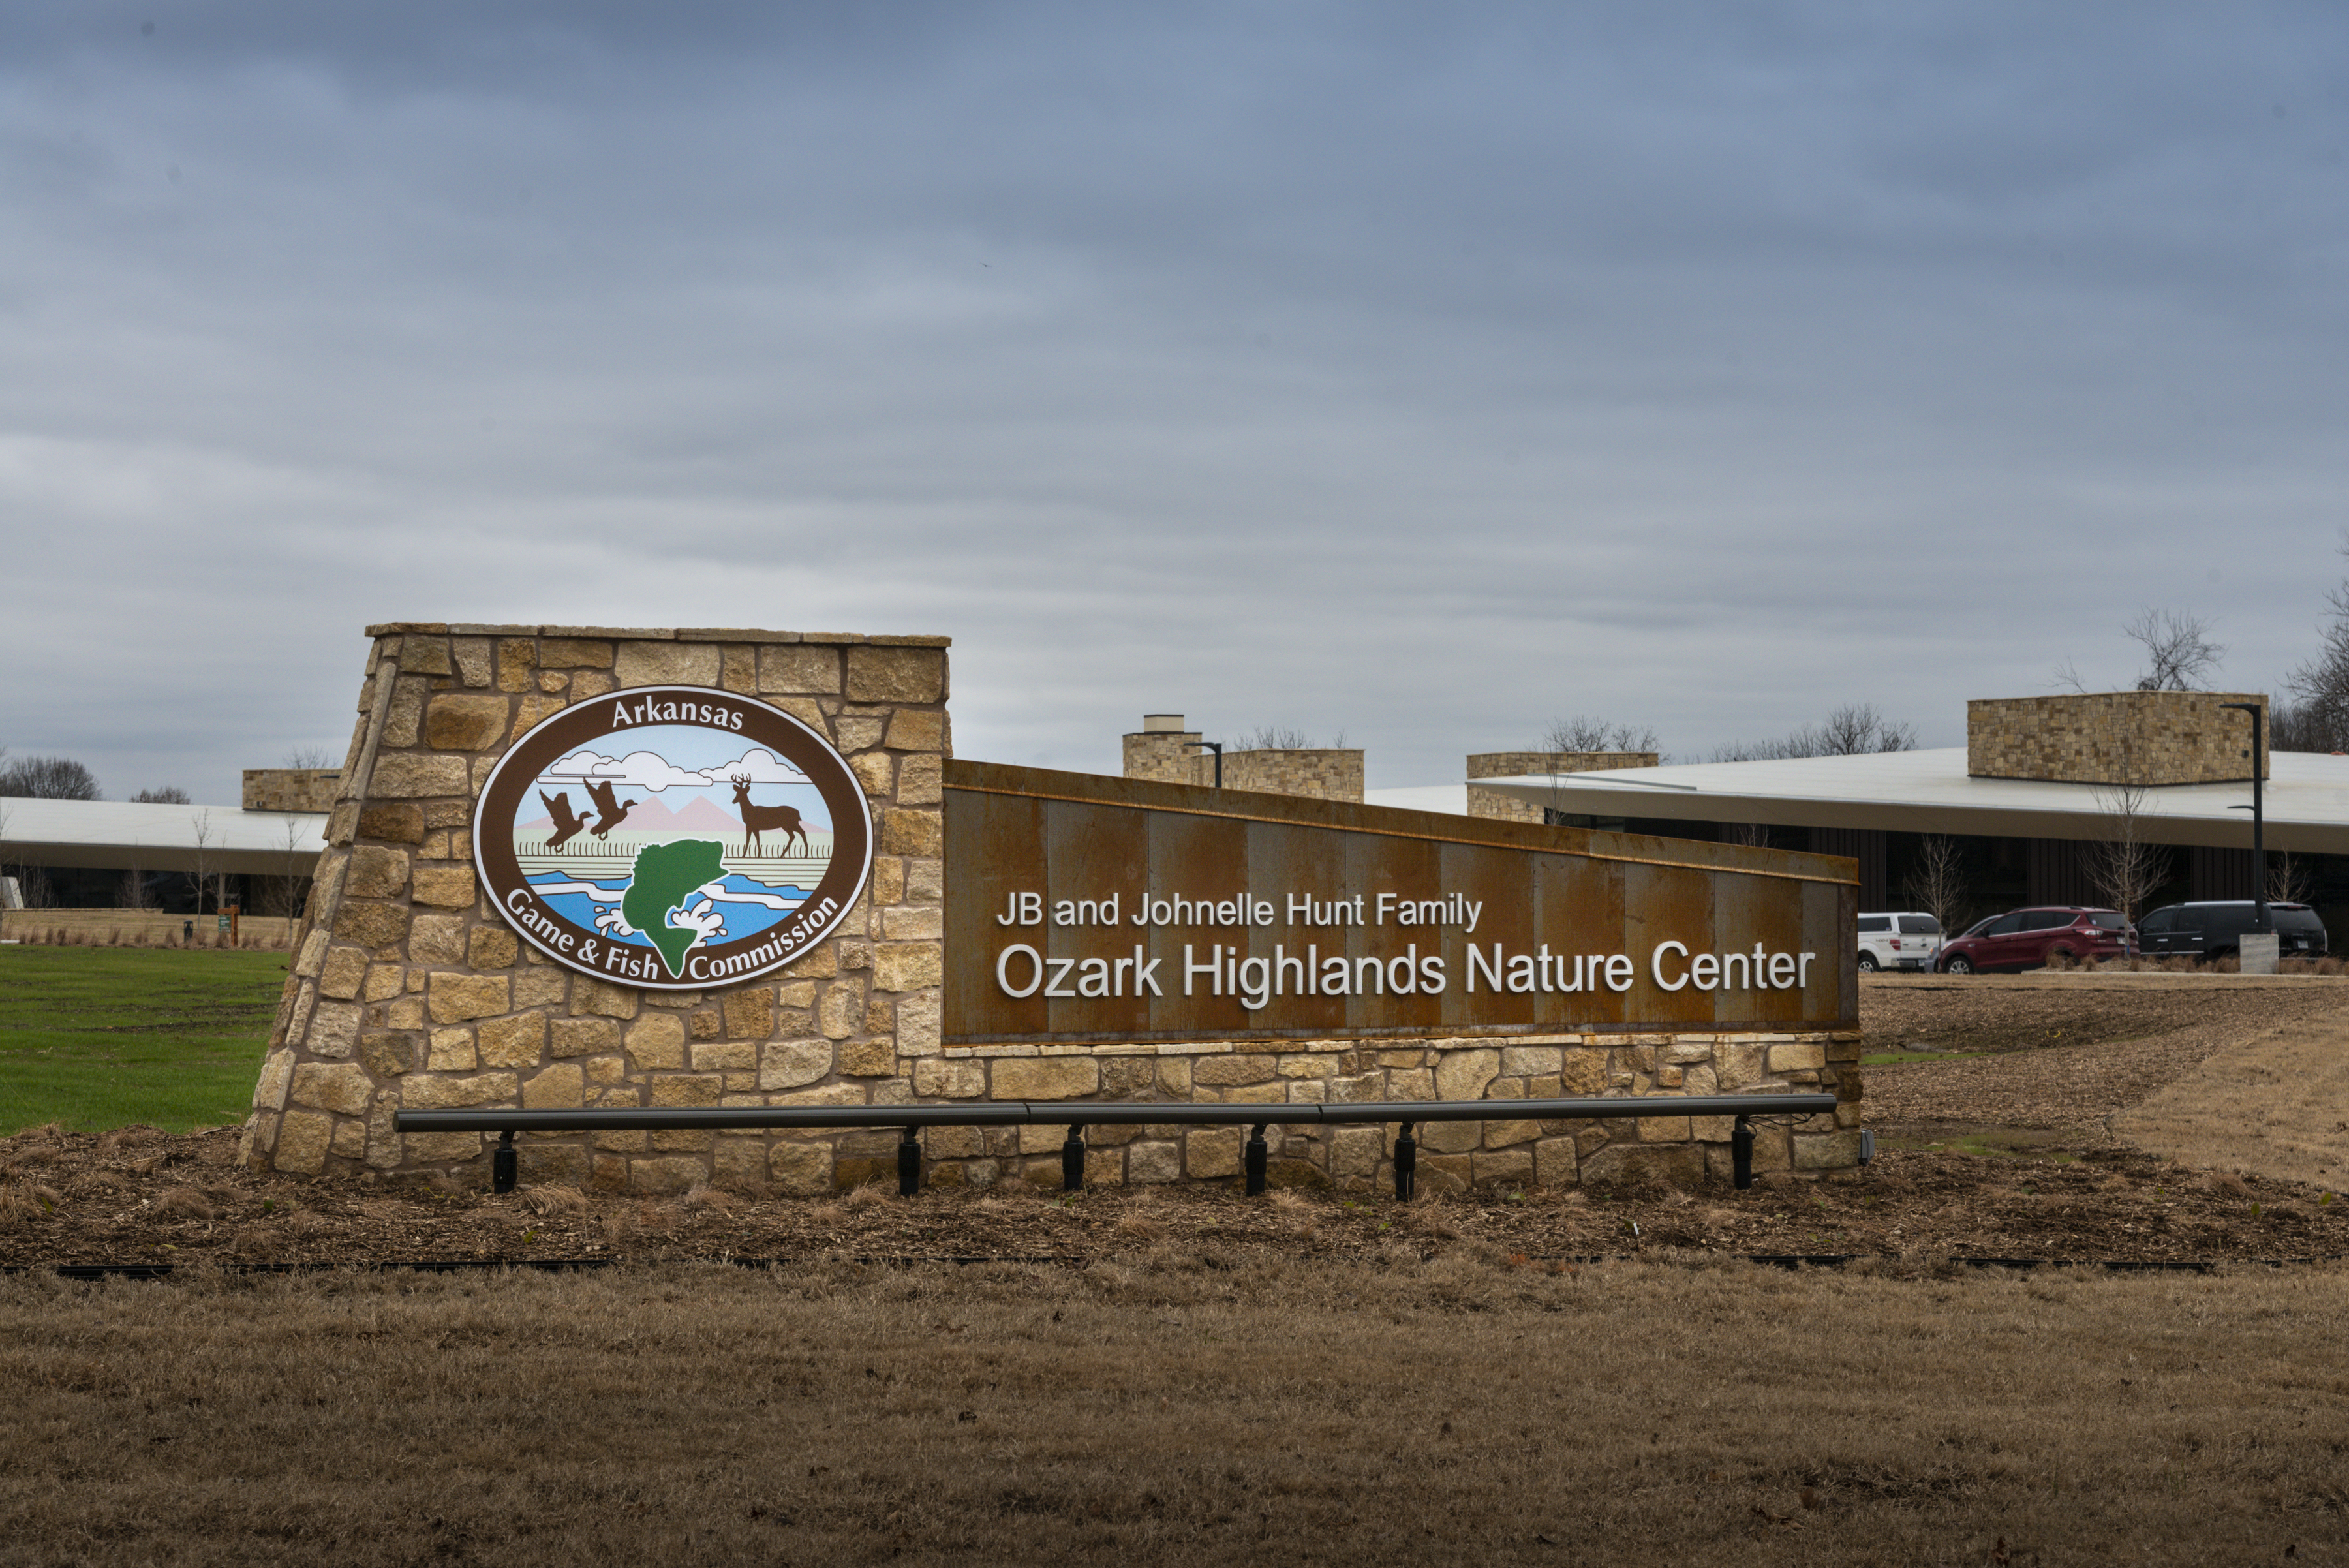 Ozark Highlands Nature Center in Springdale Arkansas